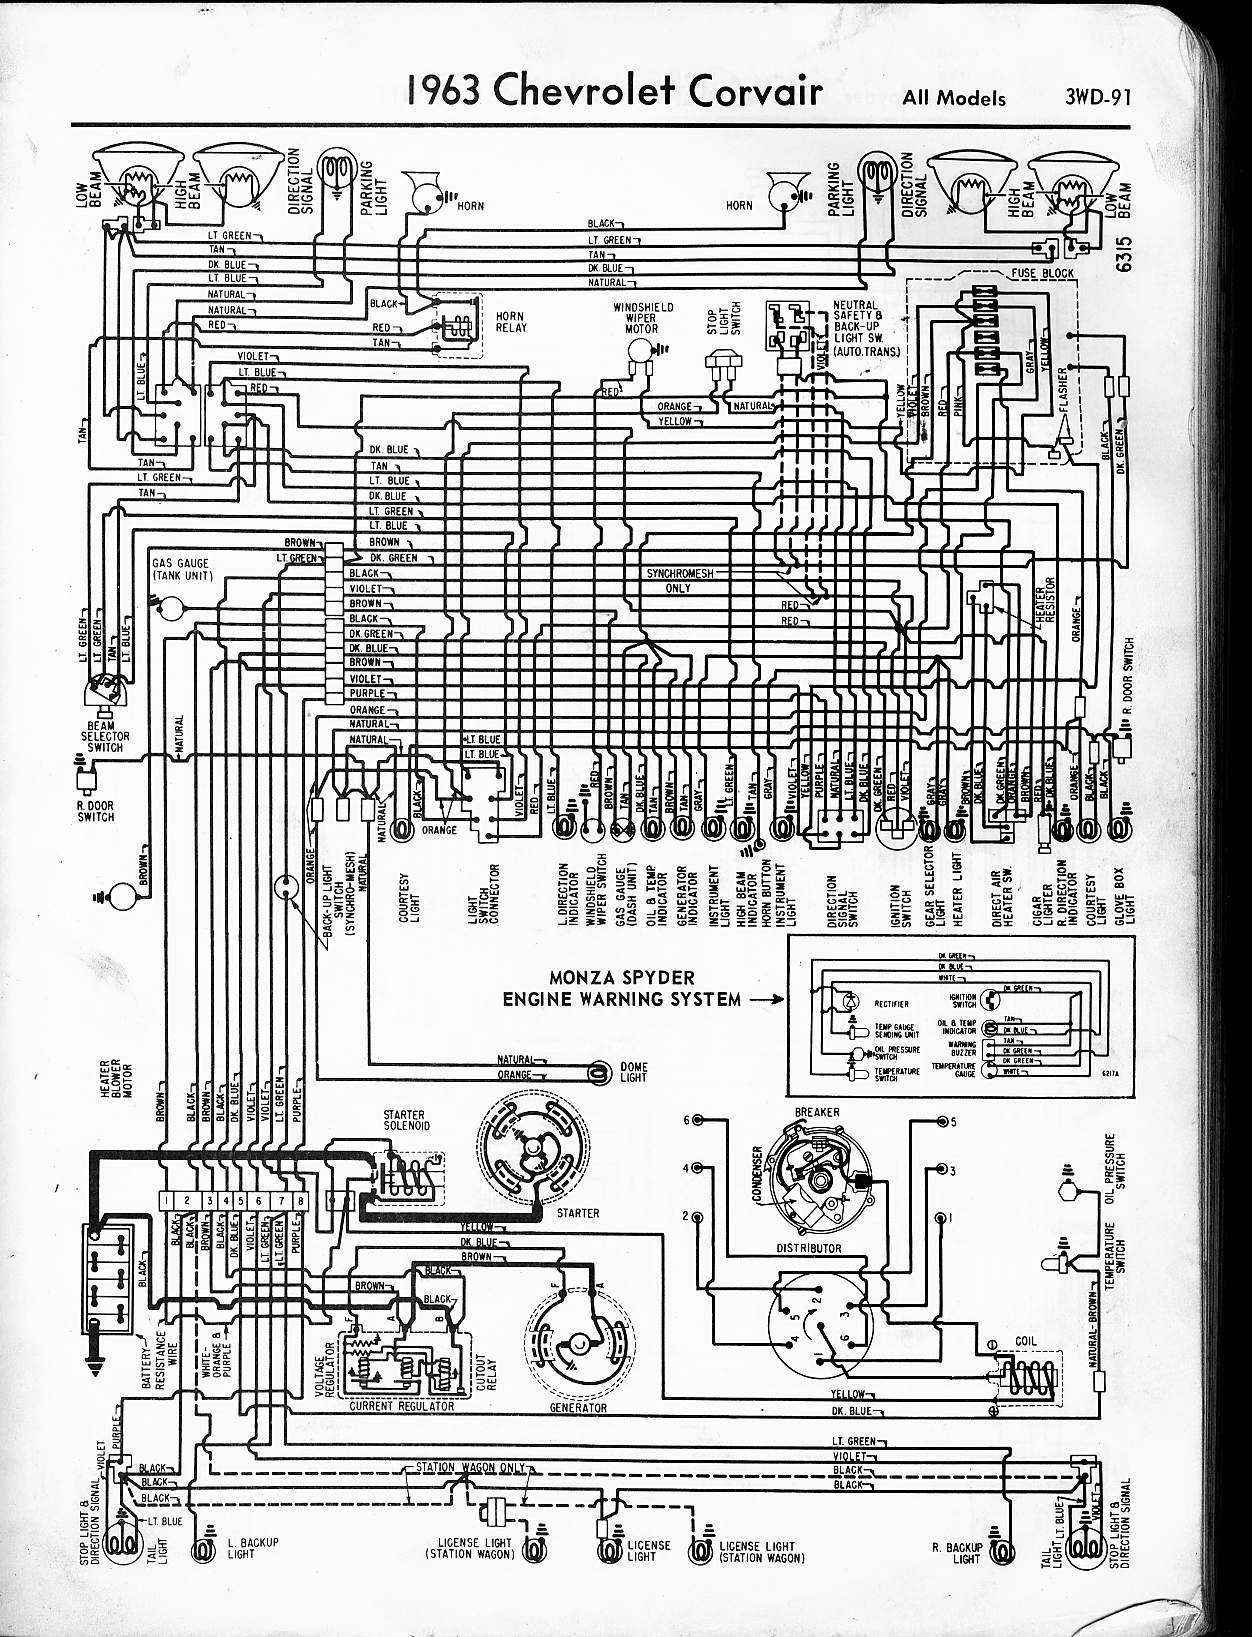 1961 chevy starter wiring diagram 1969 chevy starter wiring diagram 57 - 65 chevy wiring diagrams #12